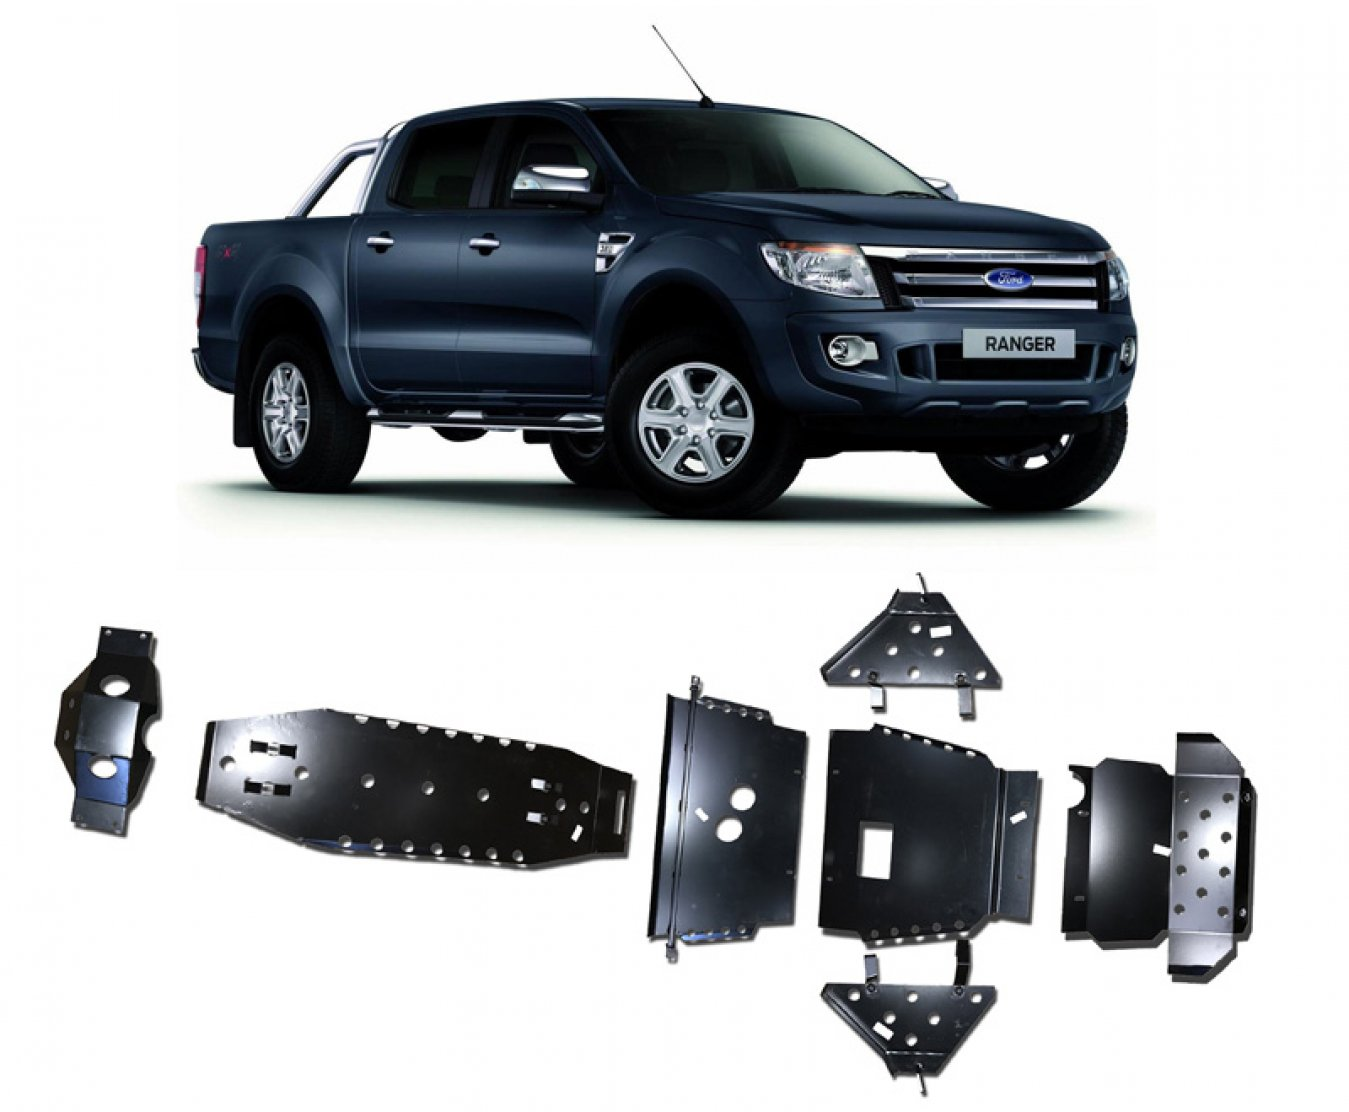 Djebel Xtreme protège les pick-up